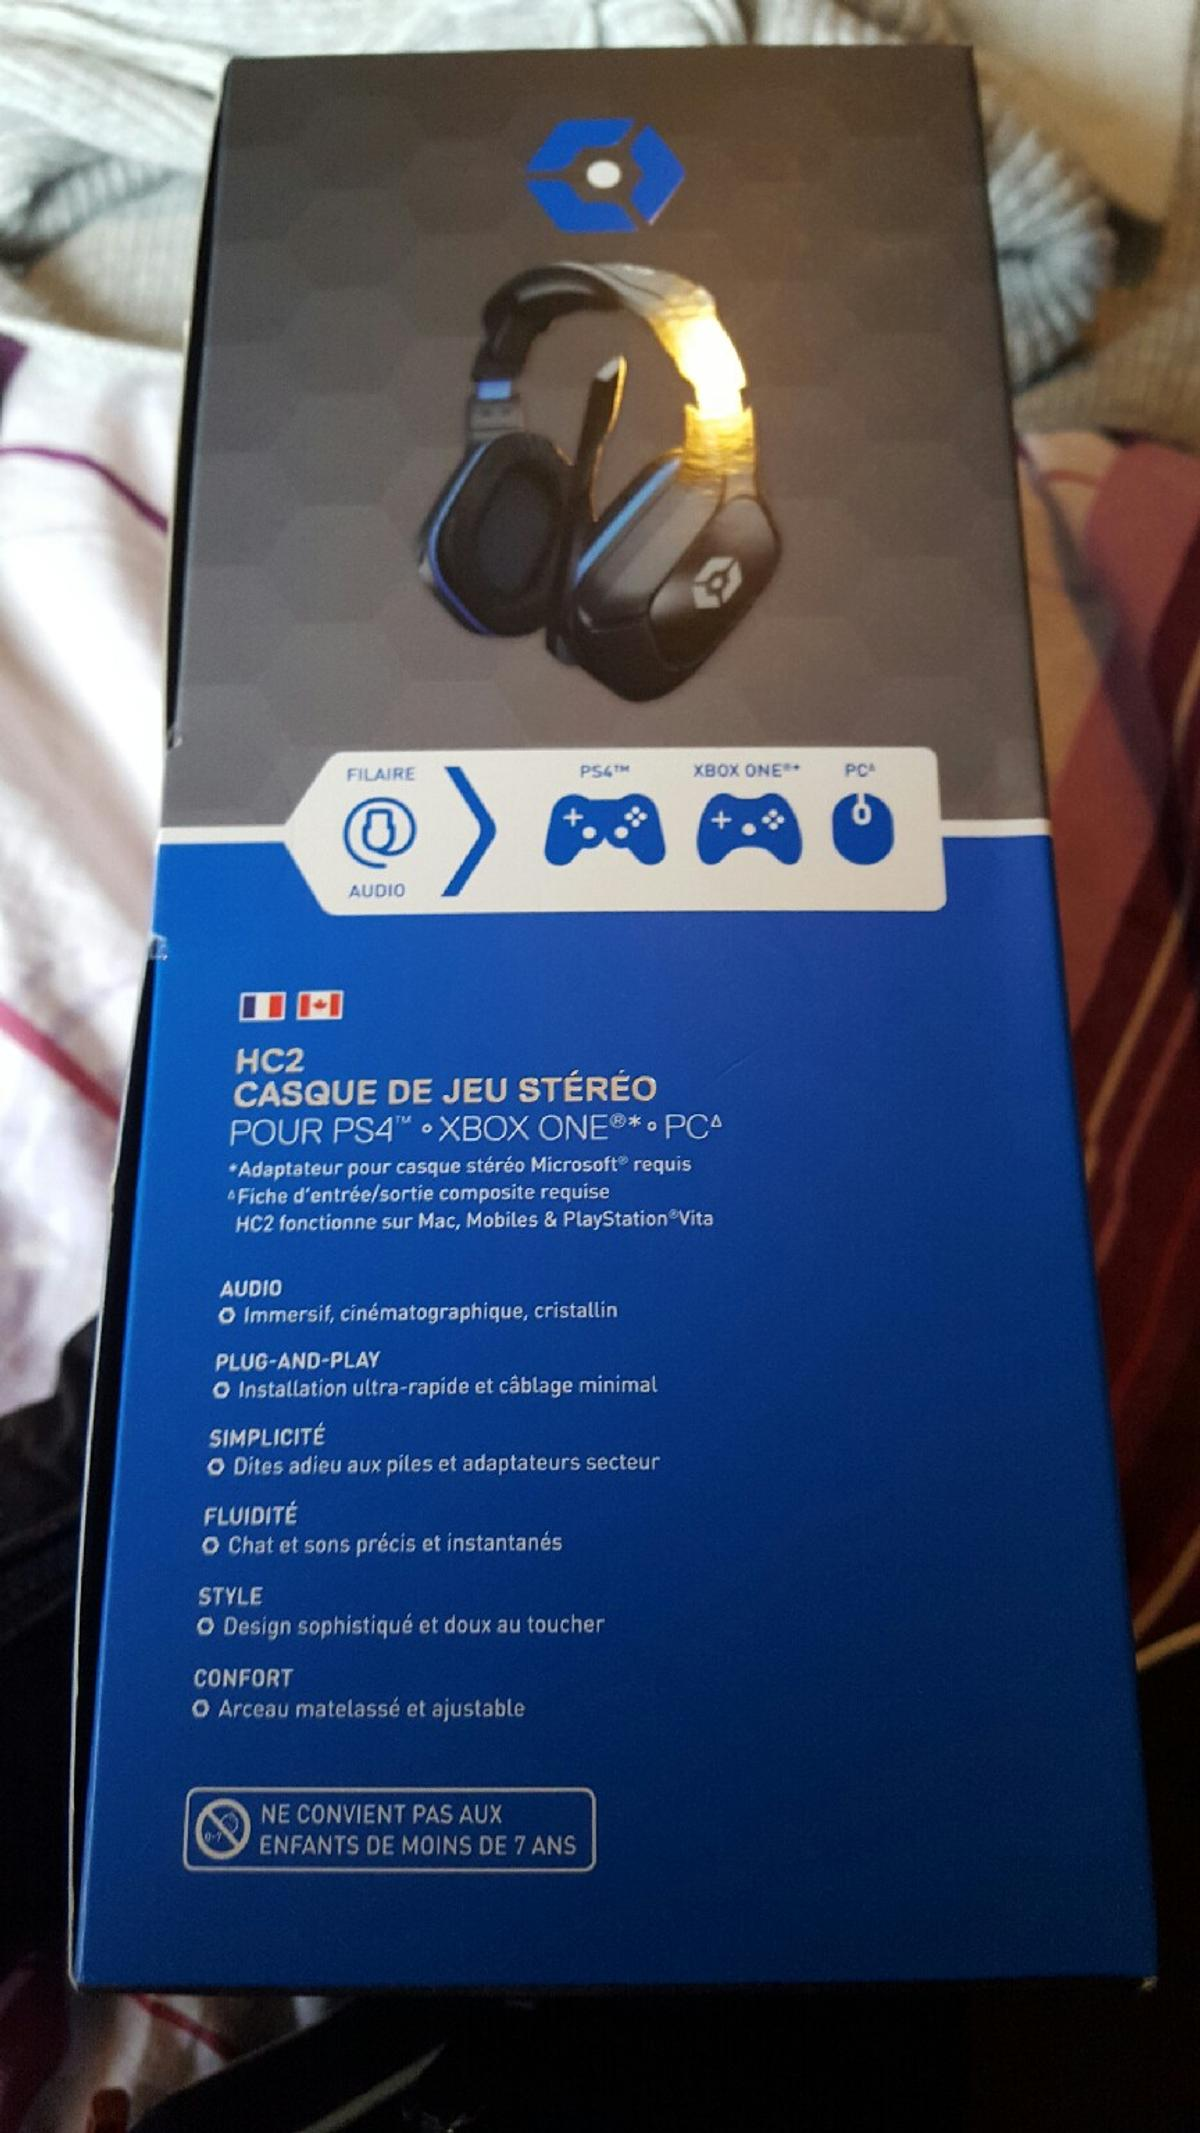 HC2 GAMING HEADSET ps4xbox one pc